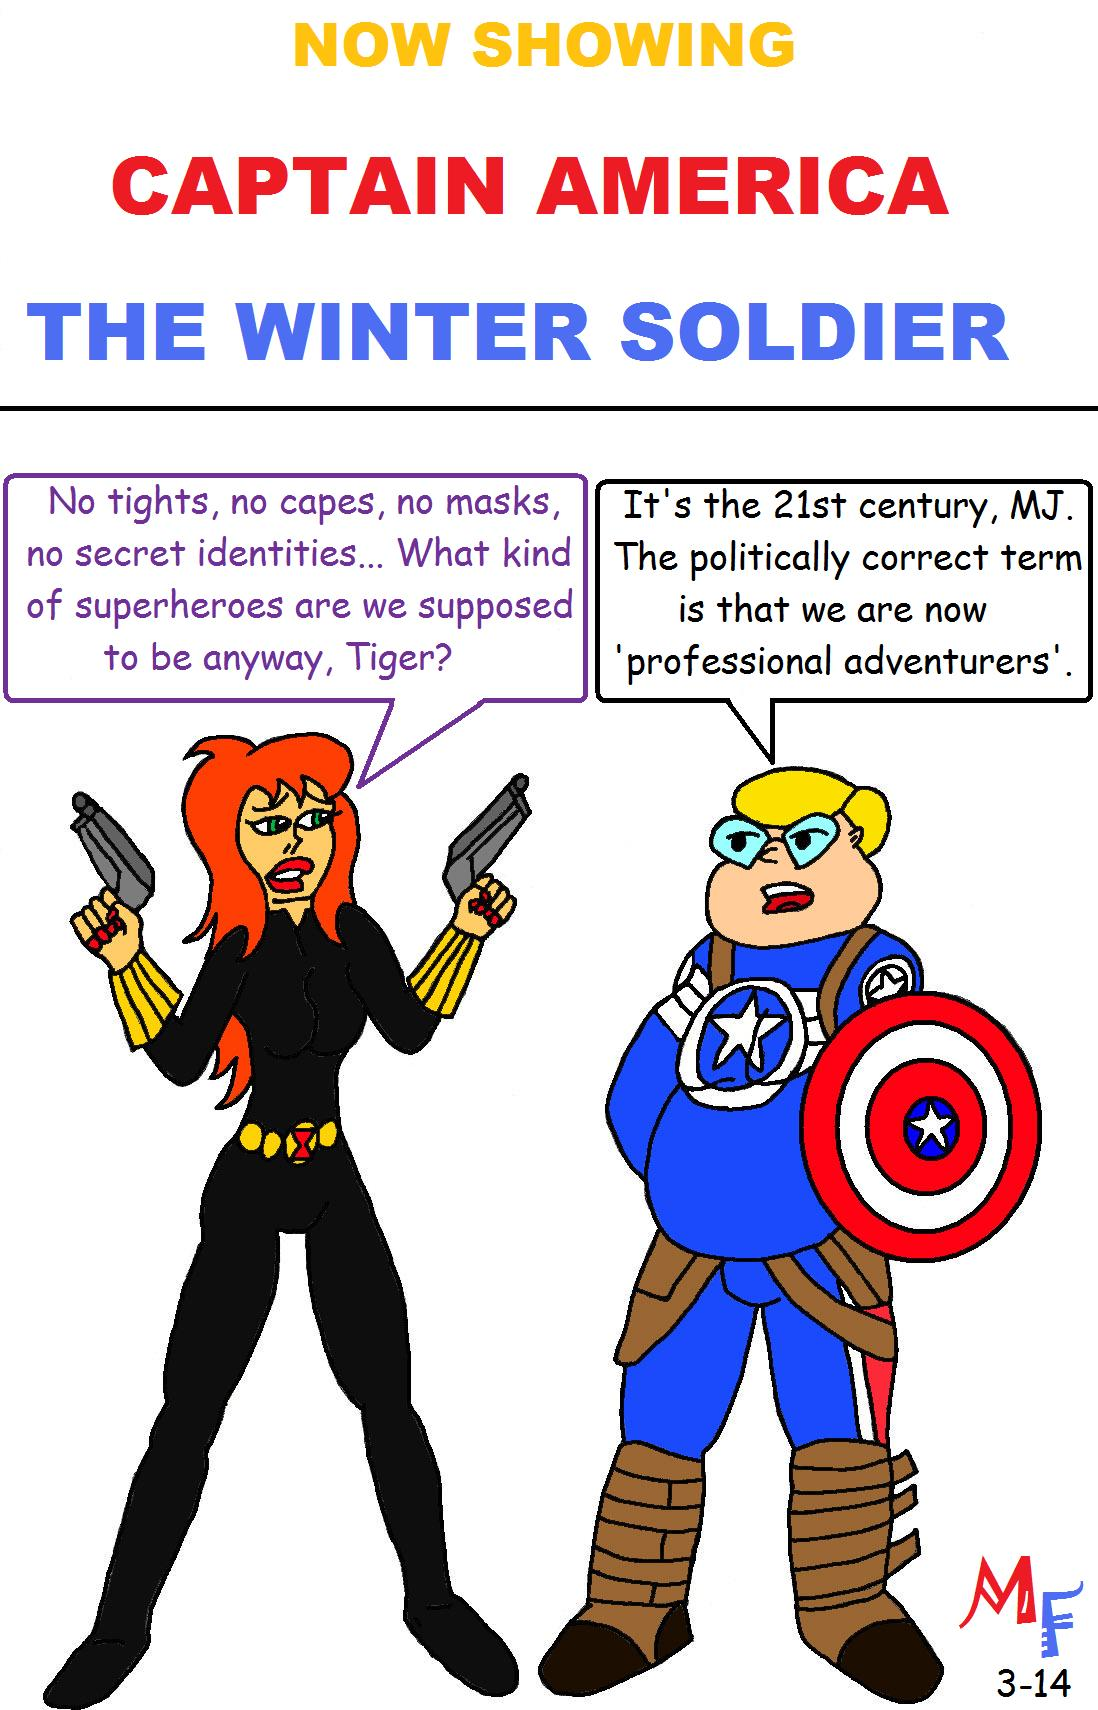 Fanboy and Mary Jane go see Captain America: The Winter Soldier